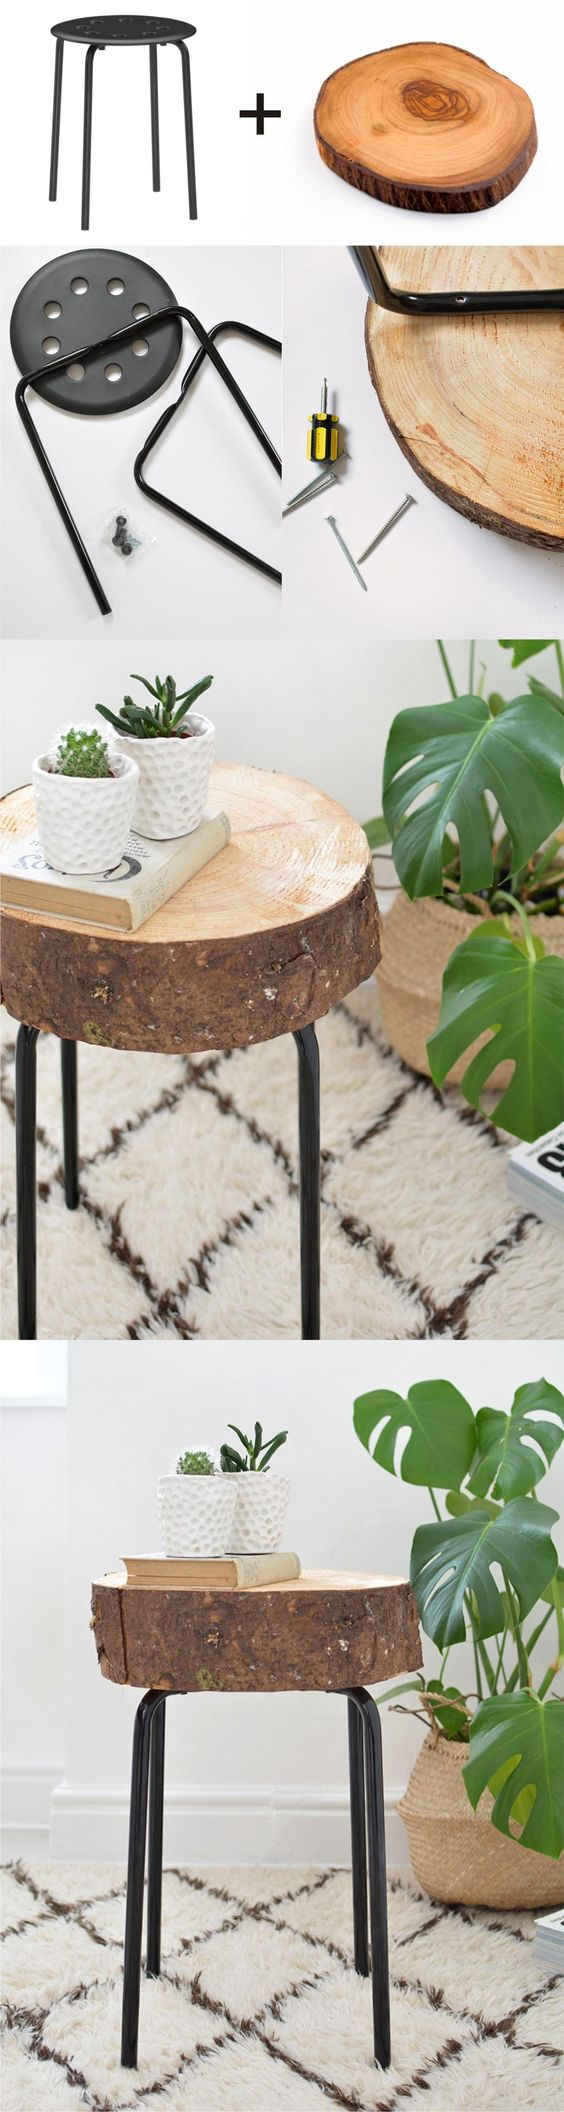 Create Your Own Rustic Log Table For Under $10 | Apartment therapy, Therapy  and Apartments